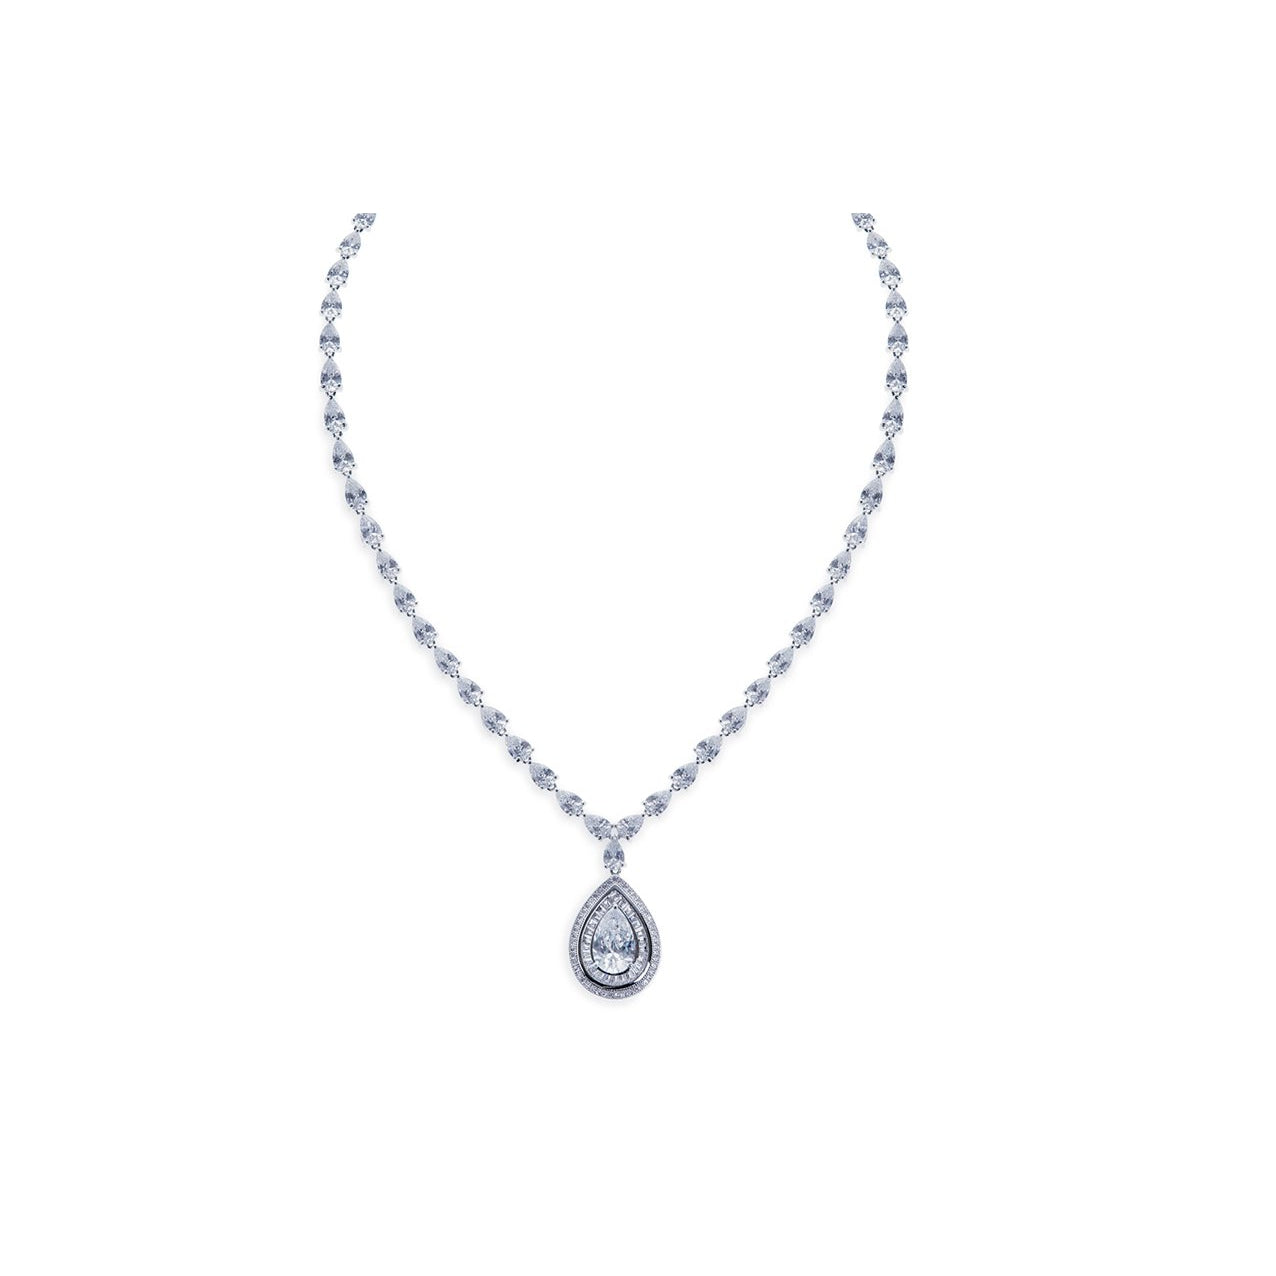 Collier de mariée<br>Santa Monica - MP Paris